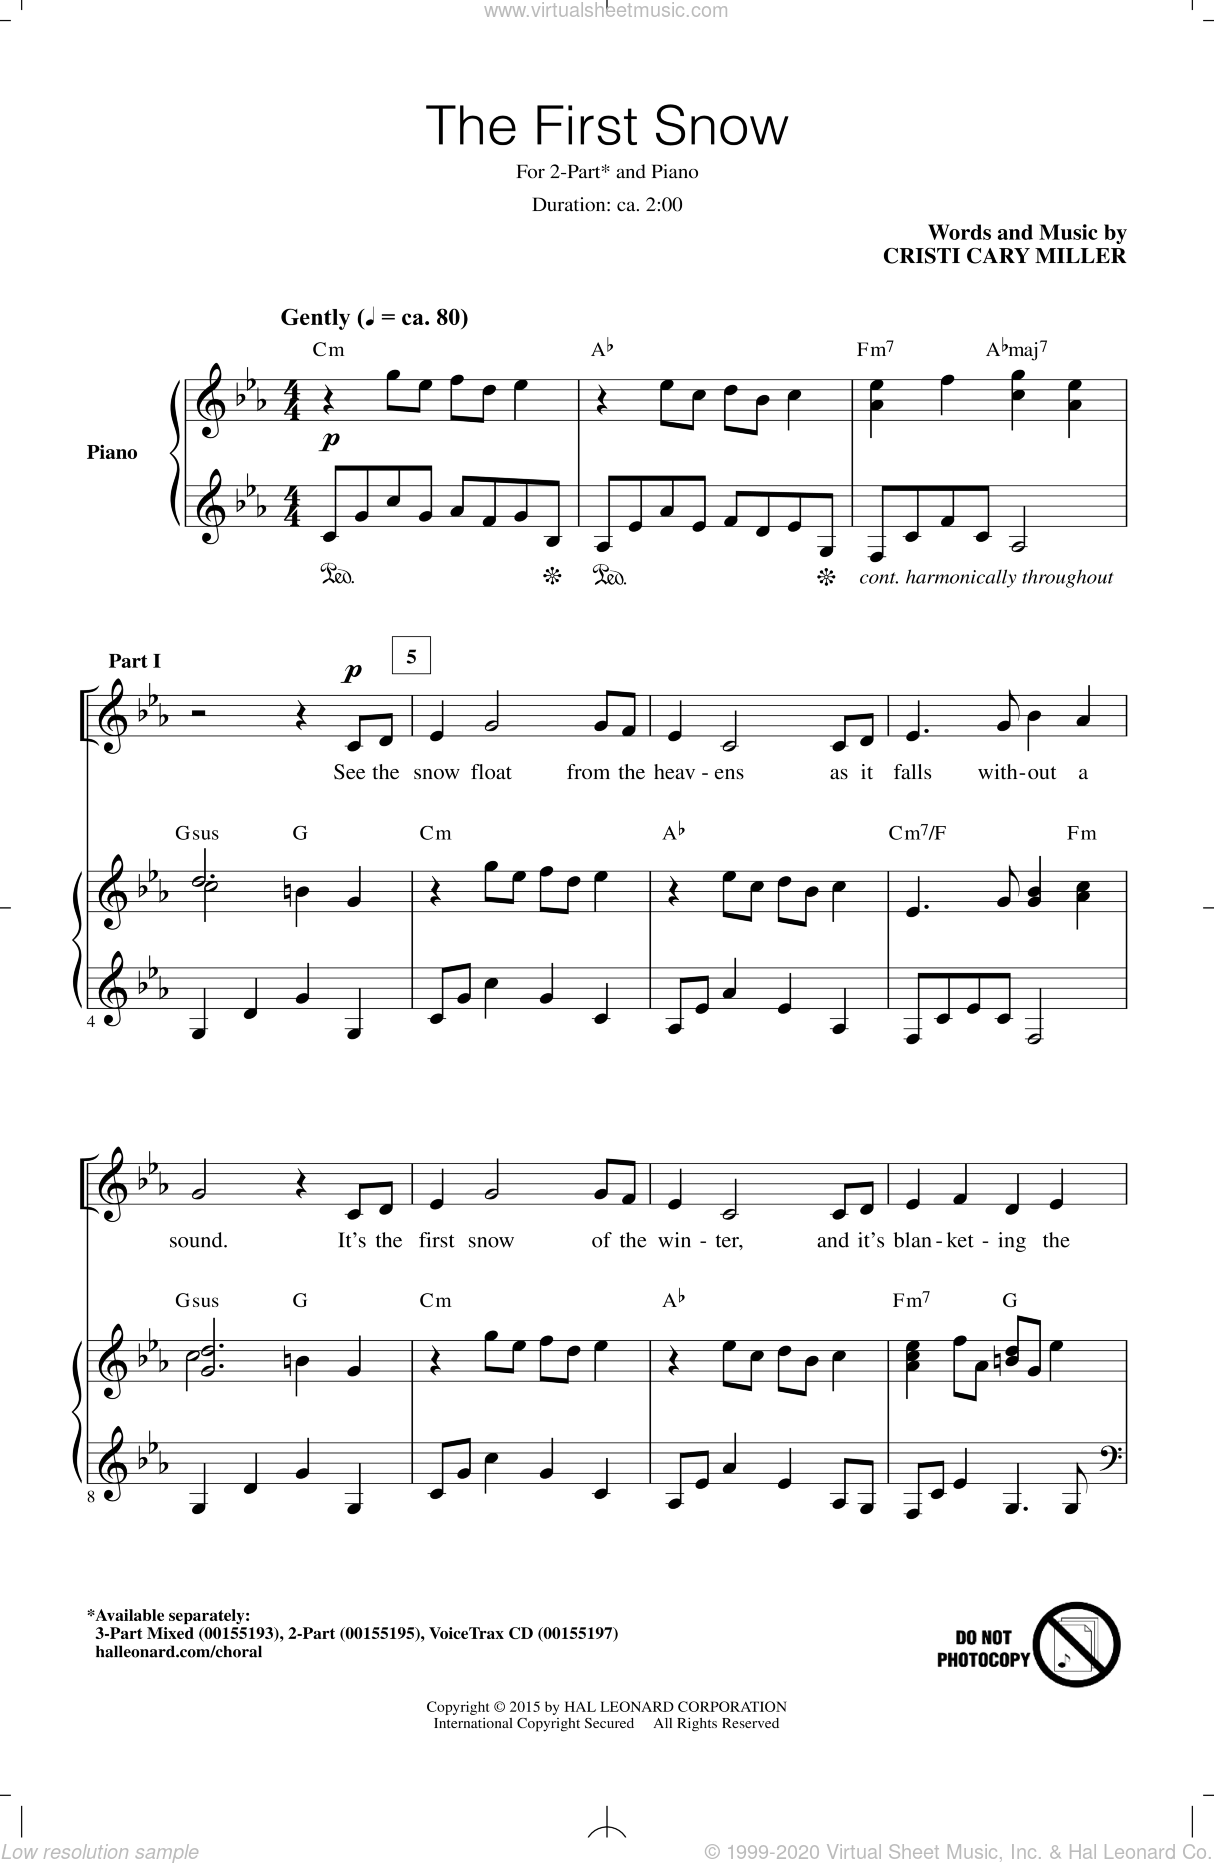 The First Snow sheet music for choir and piano (duets) by Cristi Cary Miller